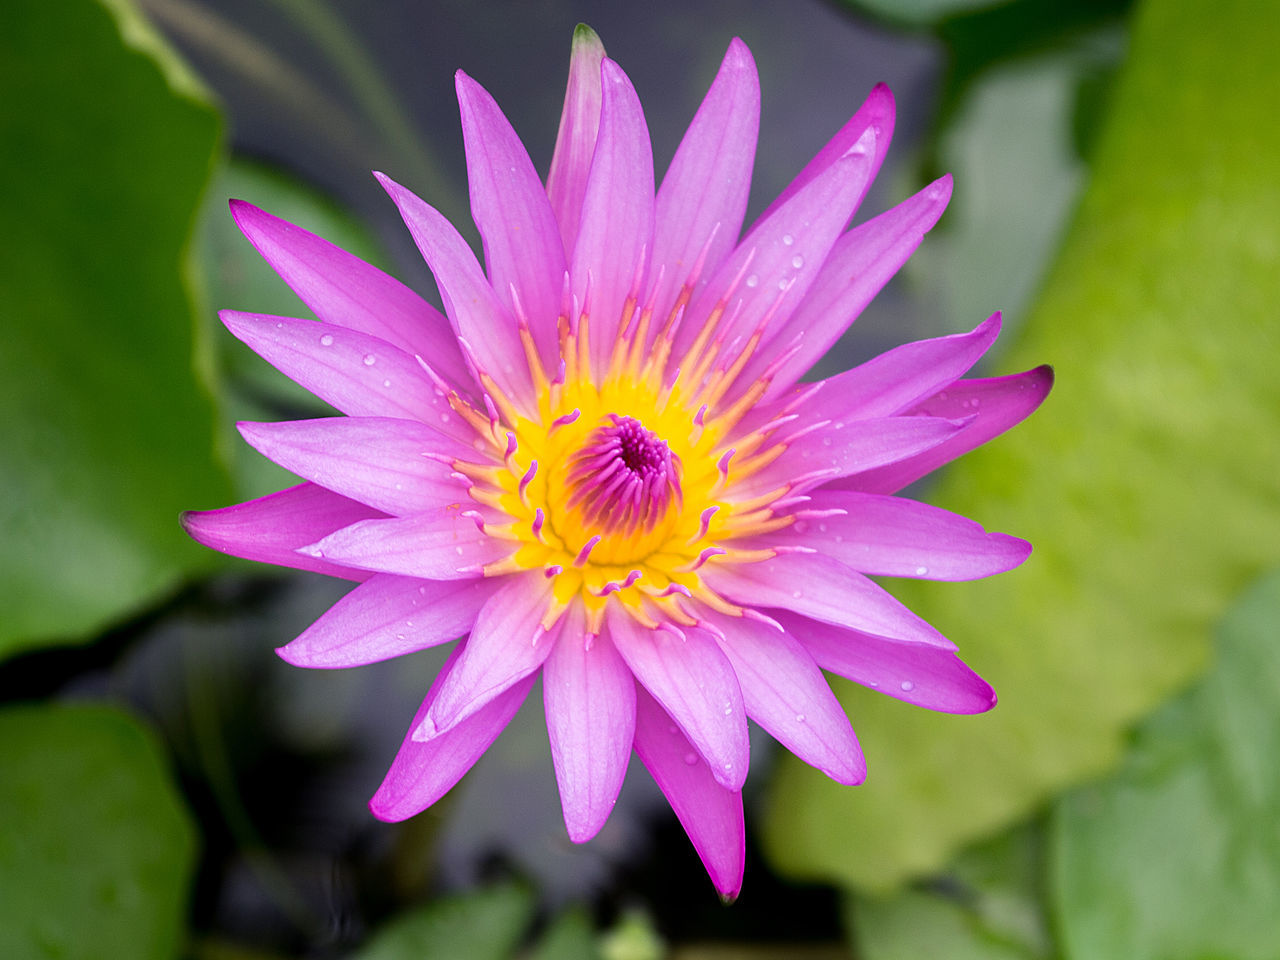 Close-up Blooming Purple Lotus in Pond Beauty In Nature Blooming Close-up Day Flower Flower Head Fragility Freshness Growth Lotus Love Nature No People Osteospermum Outdoors Petal Pink Color Plant